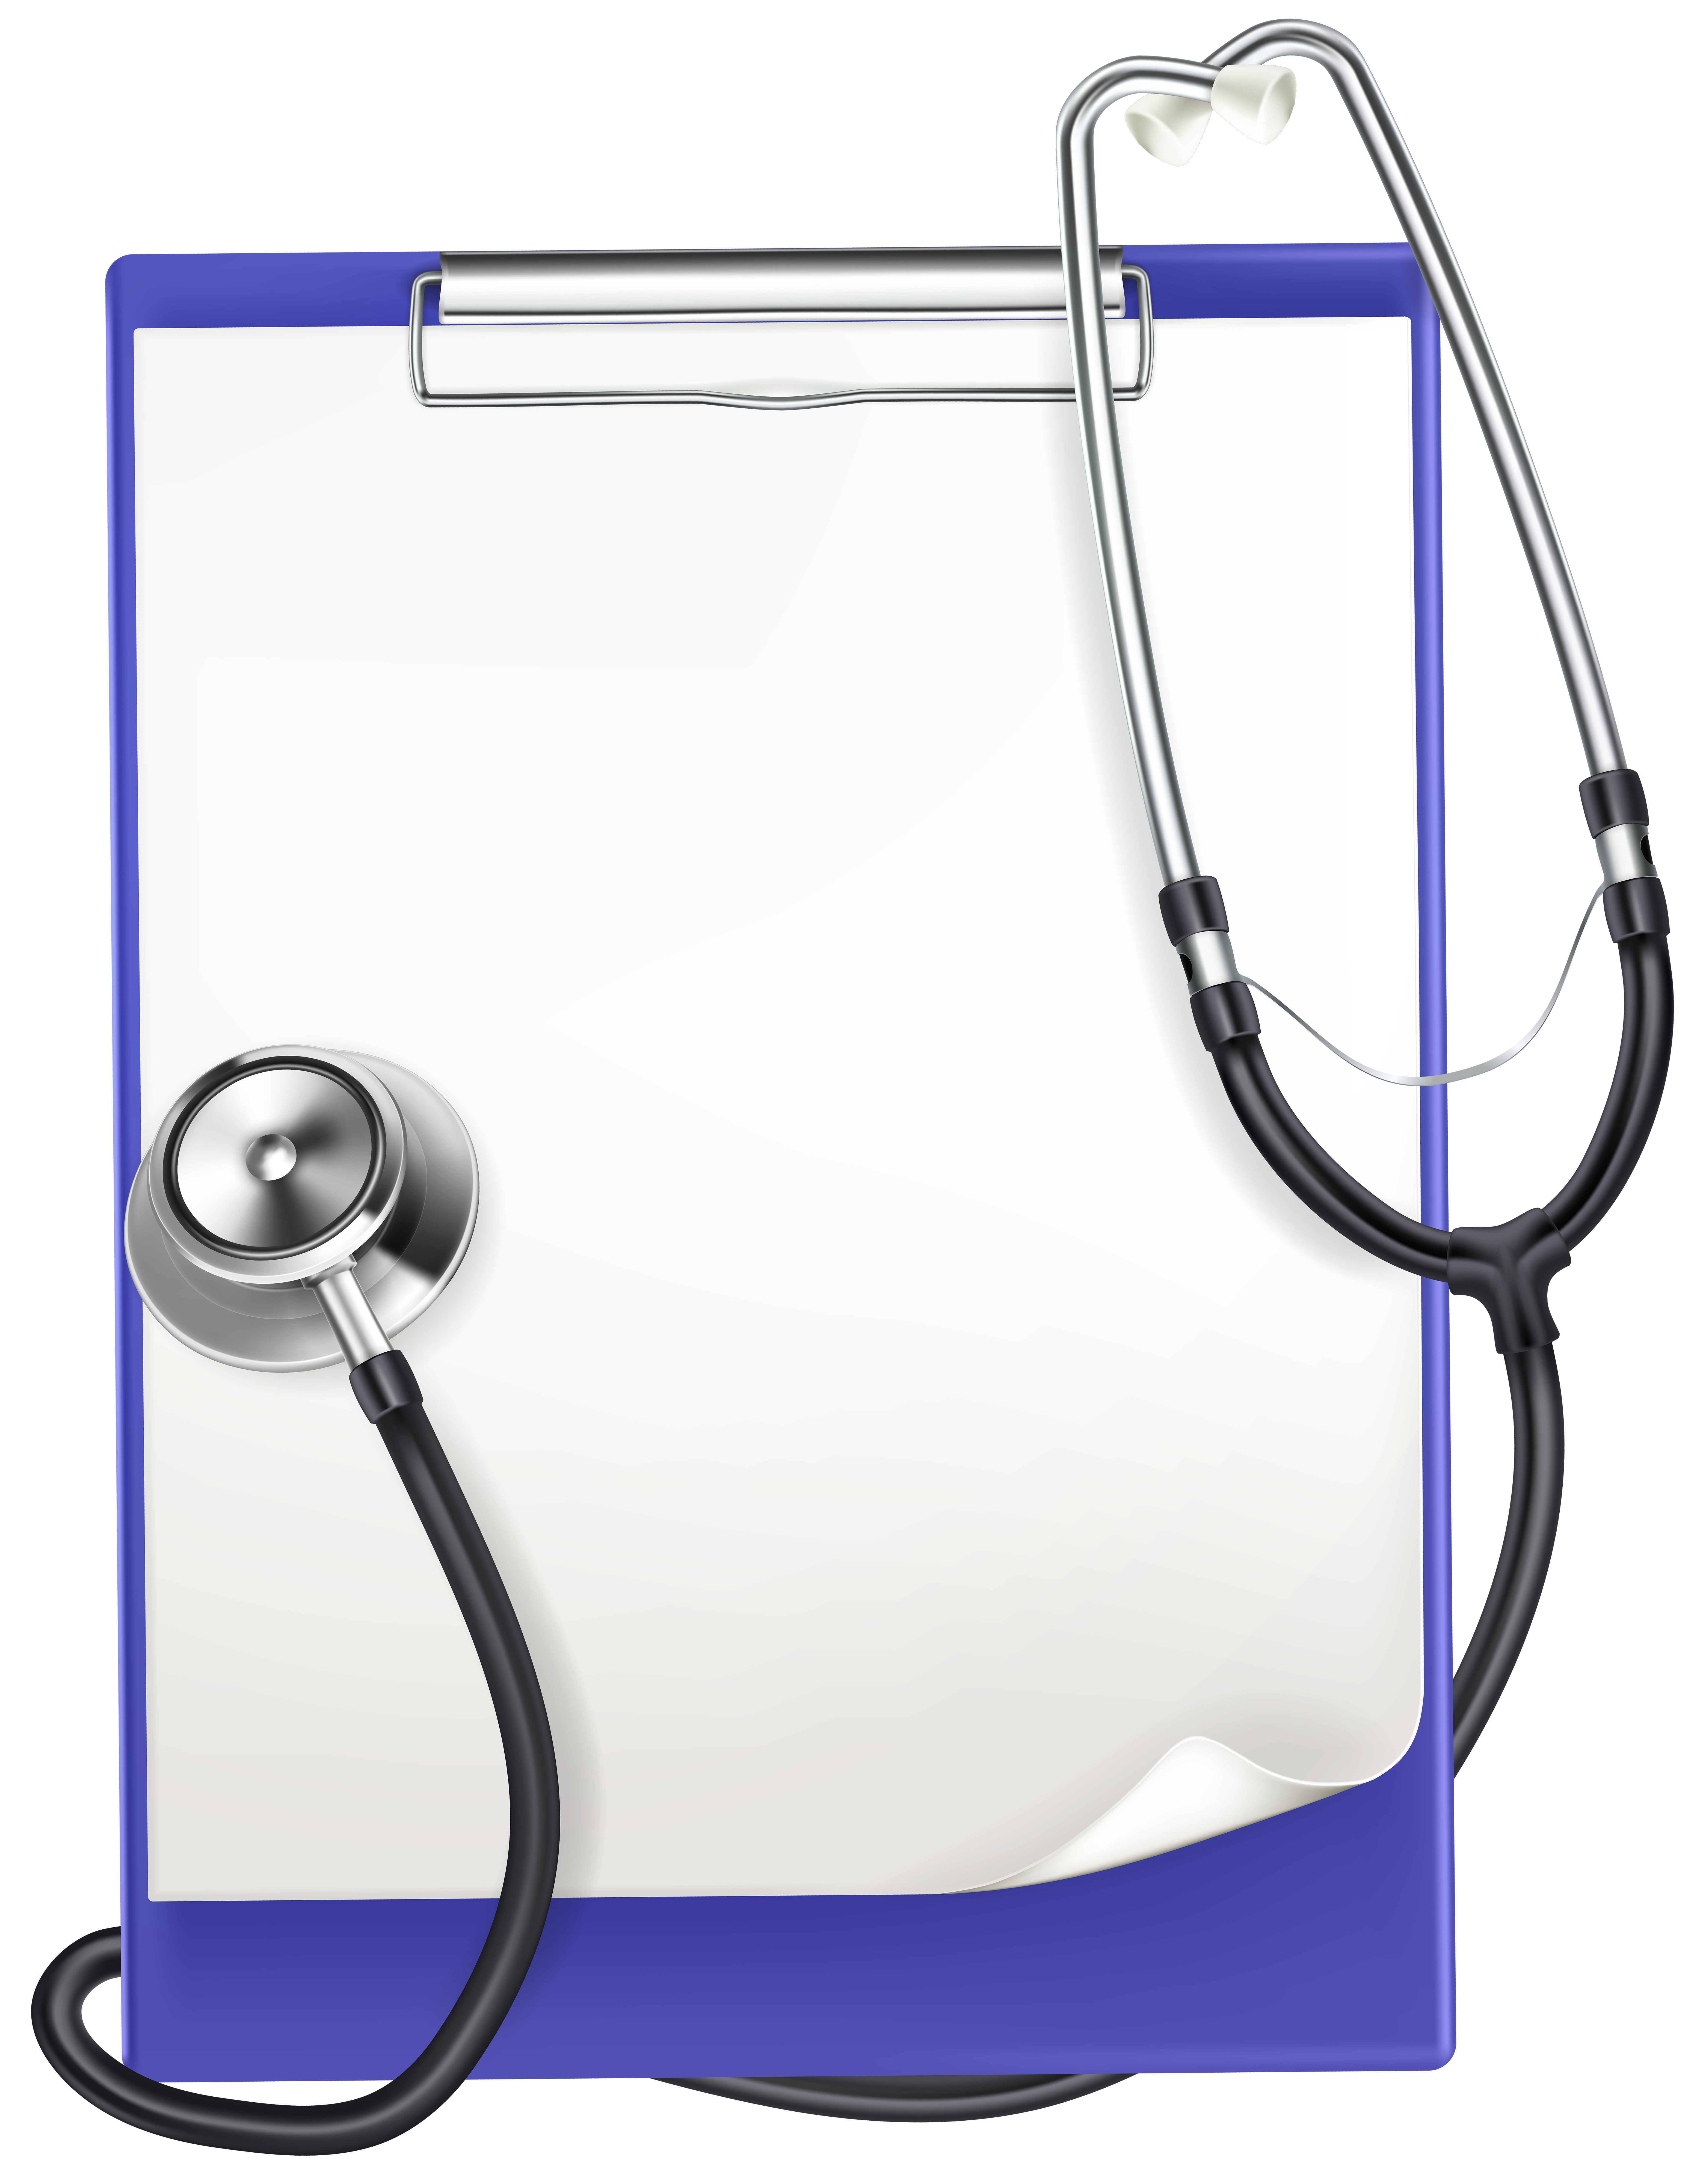 banner transparent Clipboard clipart stethoscope. With medical headphones png.